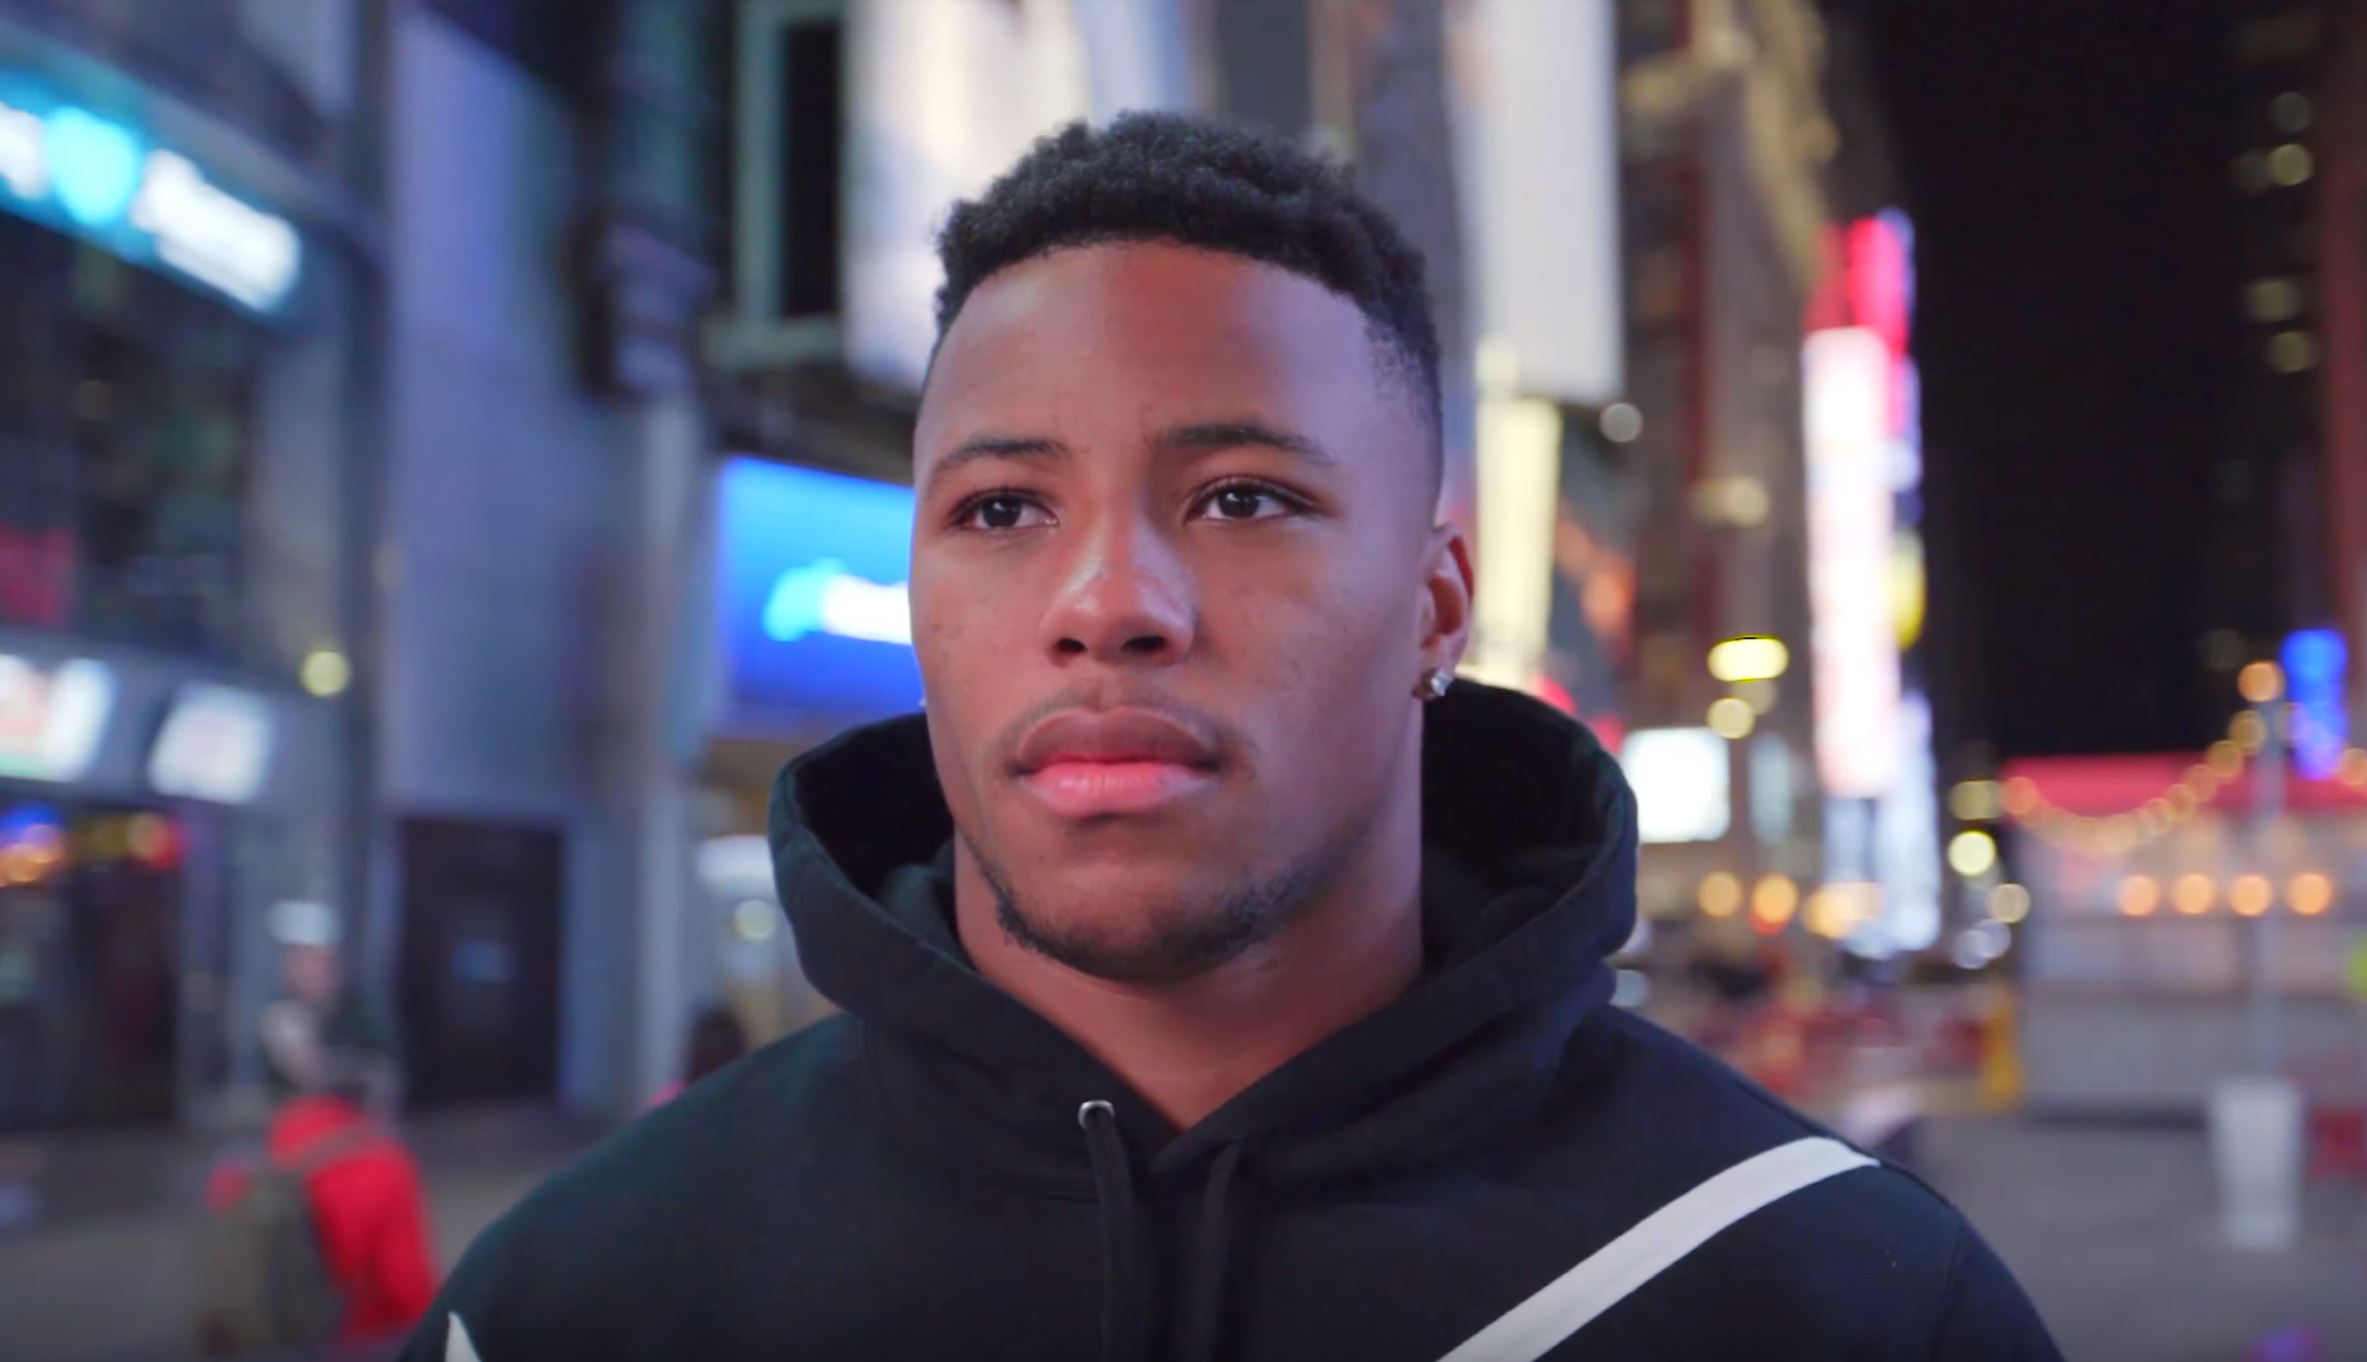 saquon barkley sneaker shopping